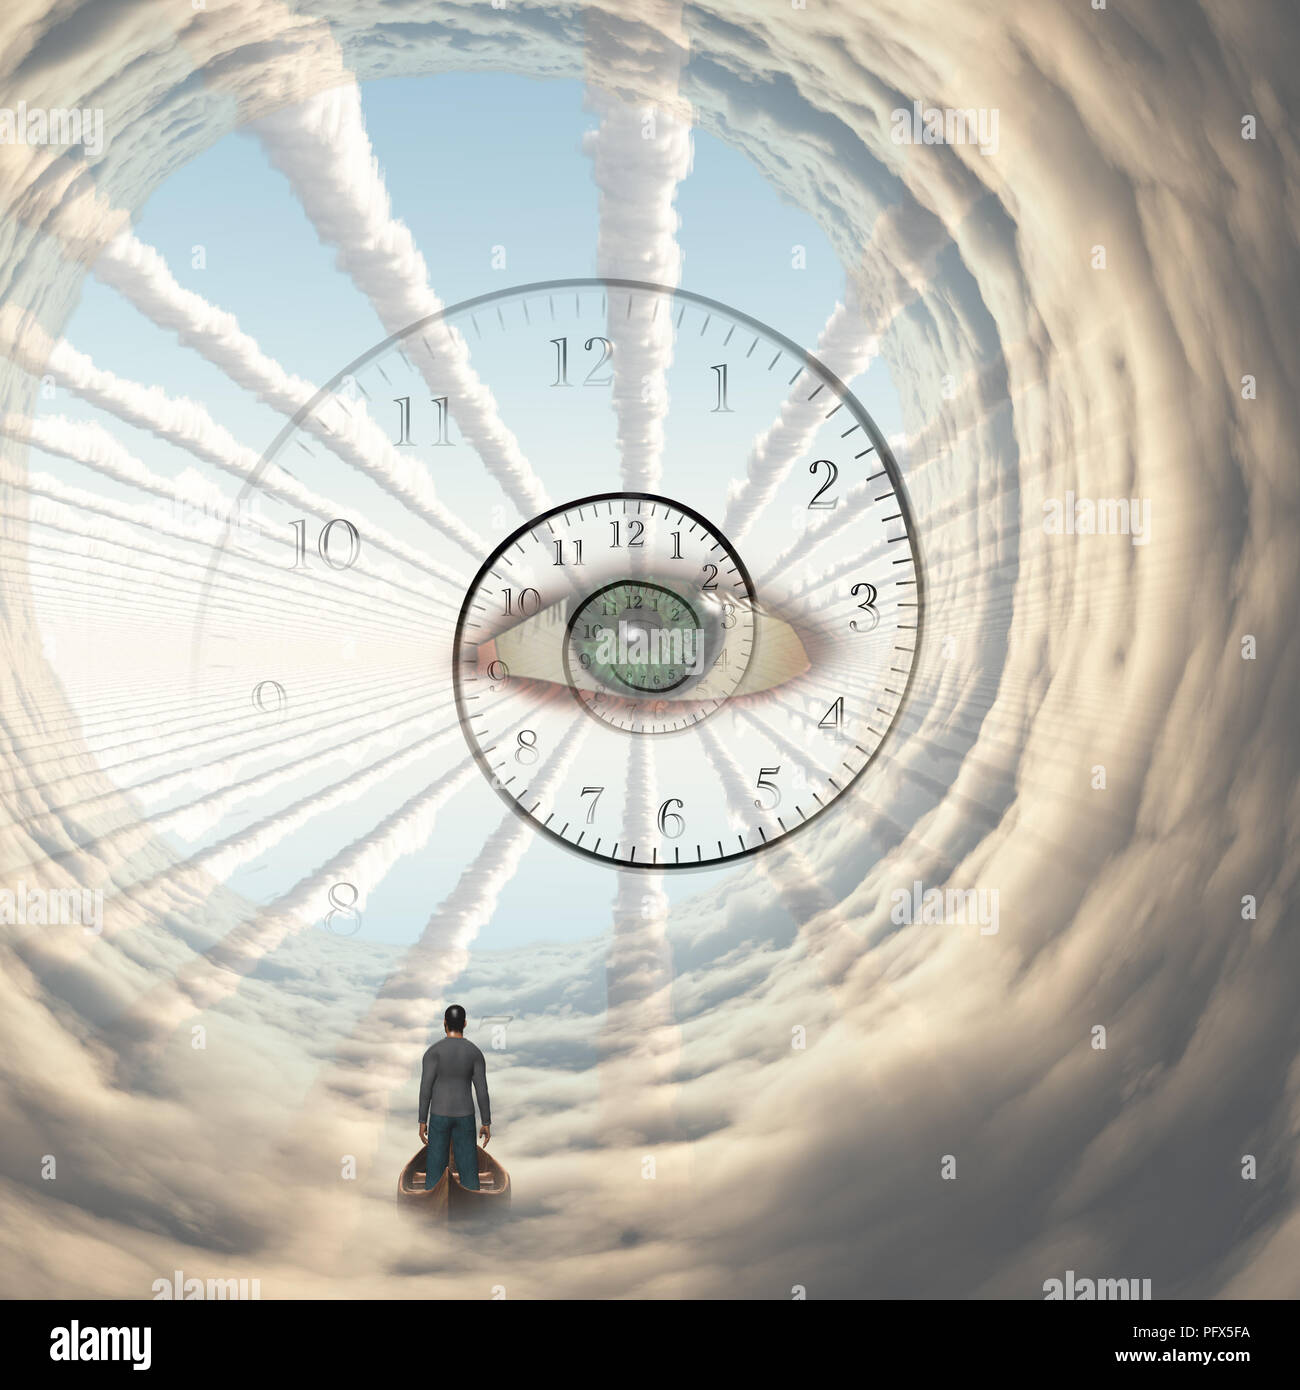 Figure of man in cloud's tunnel. God's eye and spiral of time. Stock Photo